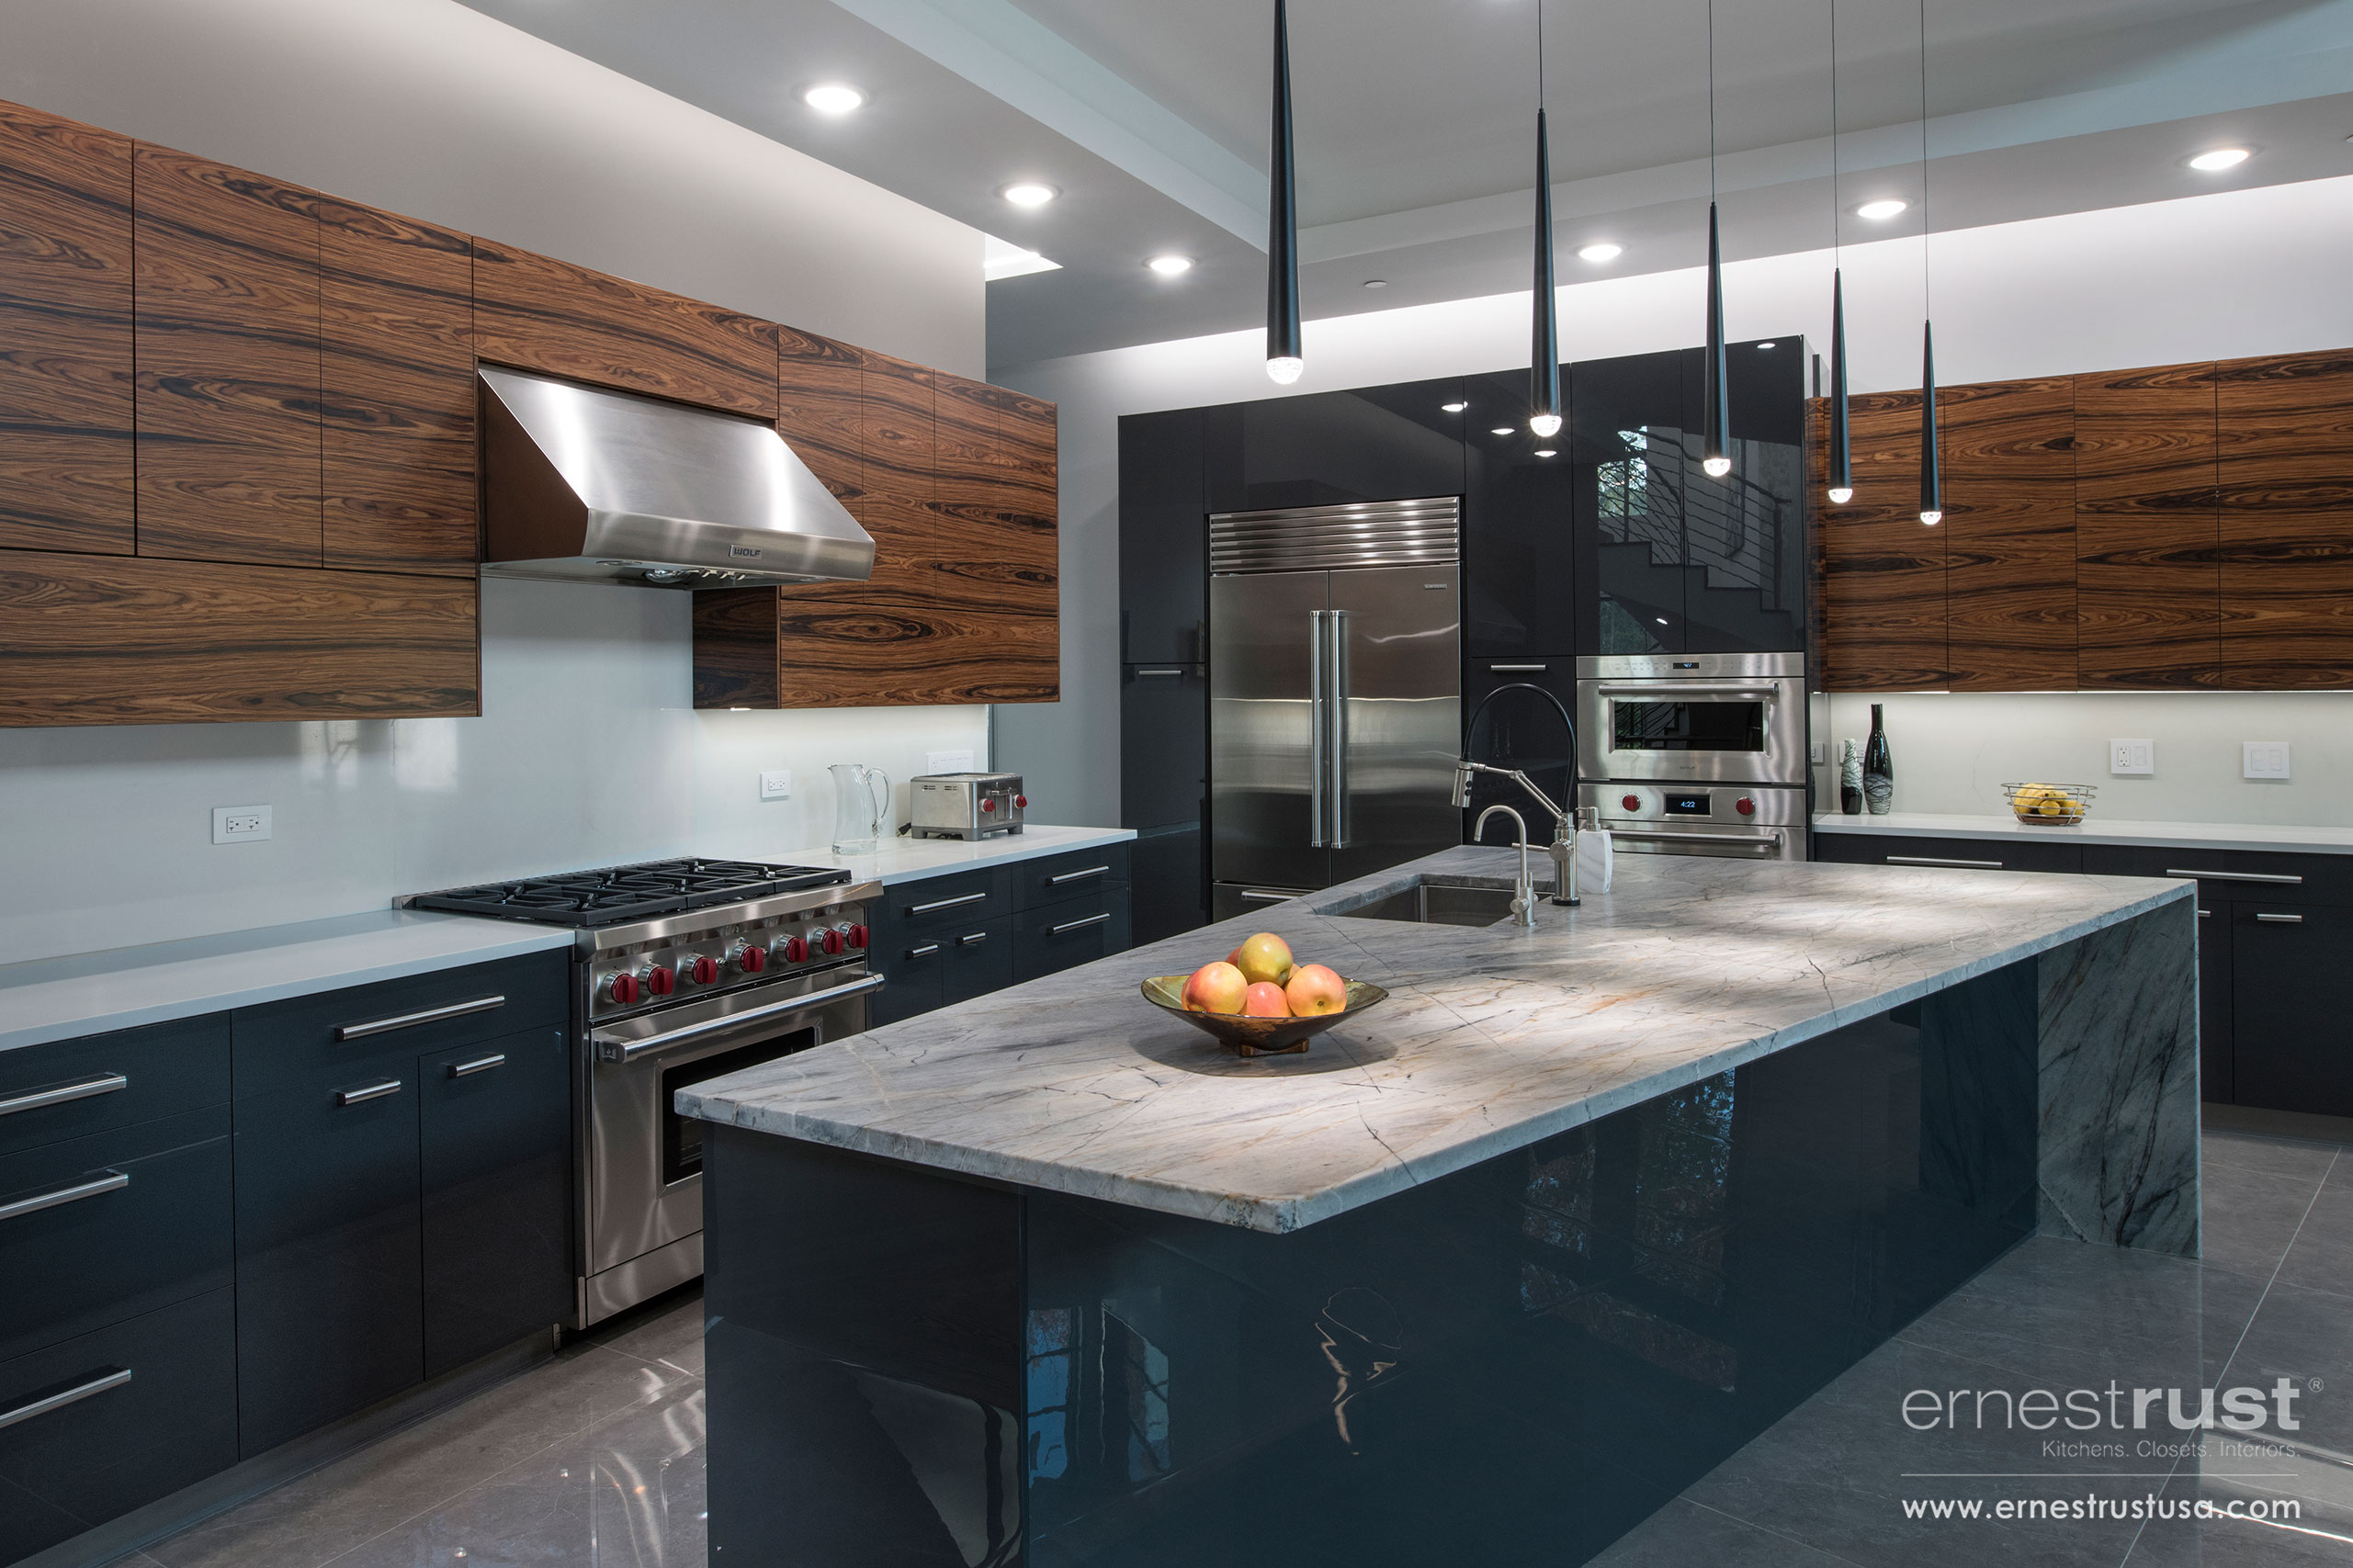 Kitchen R5 G1 Collection Northbrook Il Custom Cabinet Gallery Modern Cabinets By Ernestrust